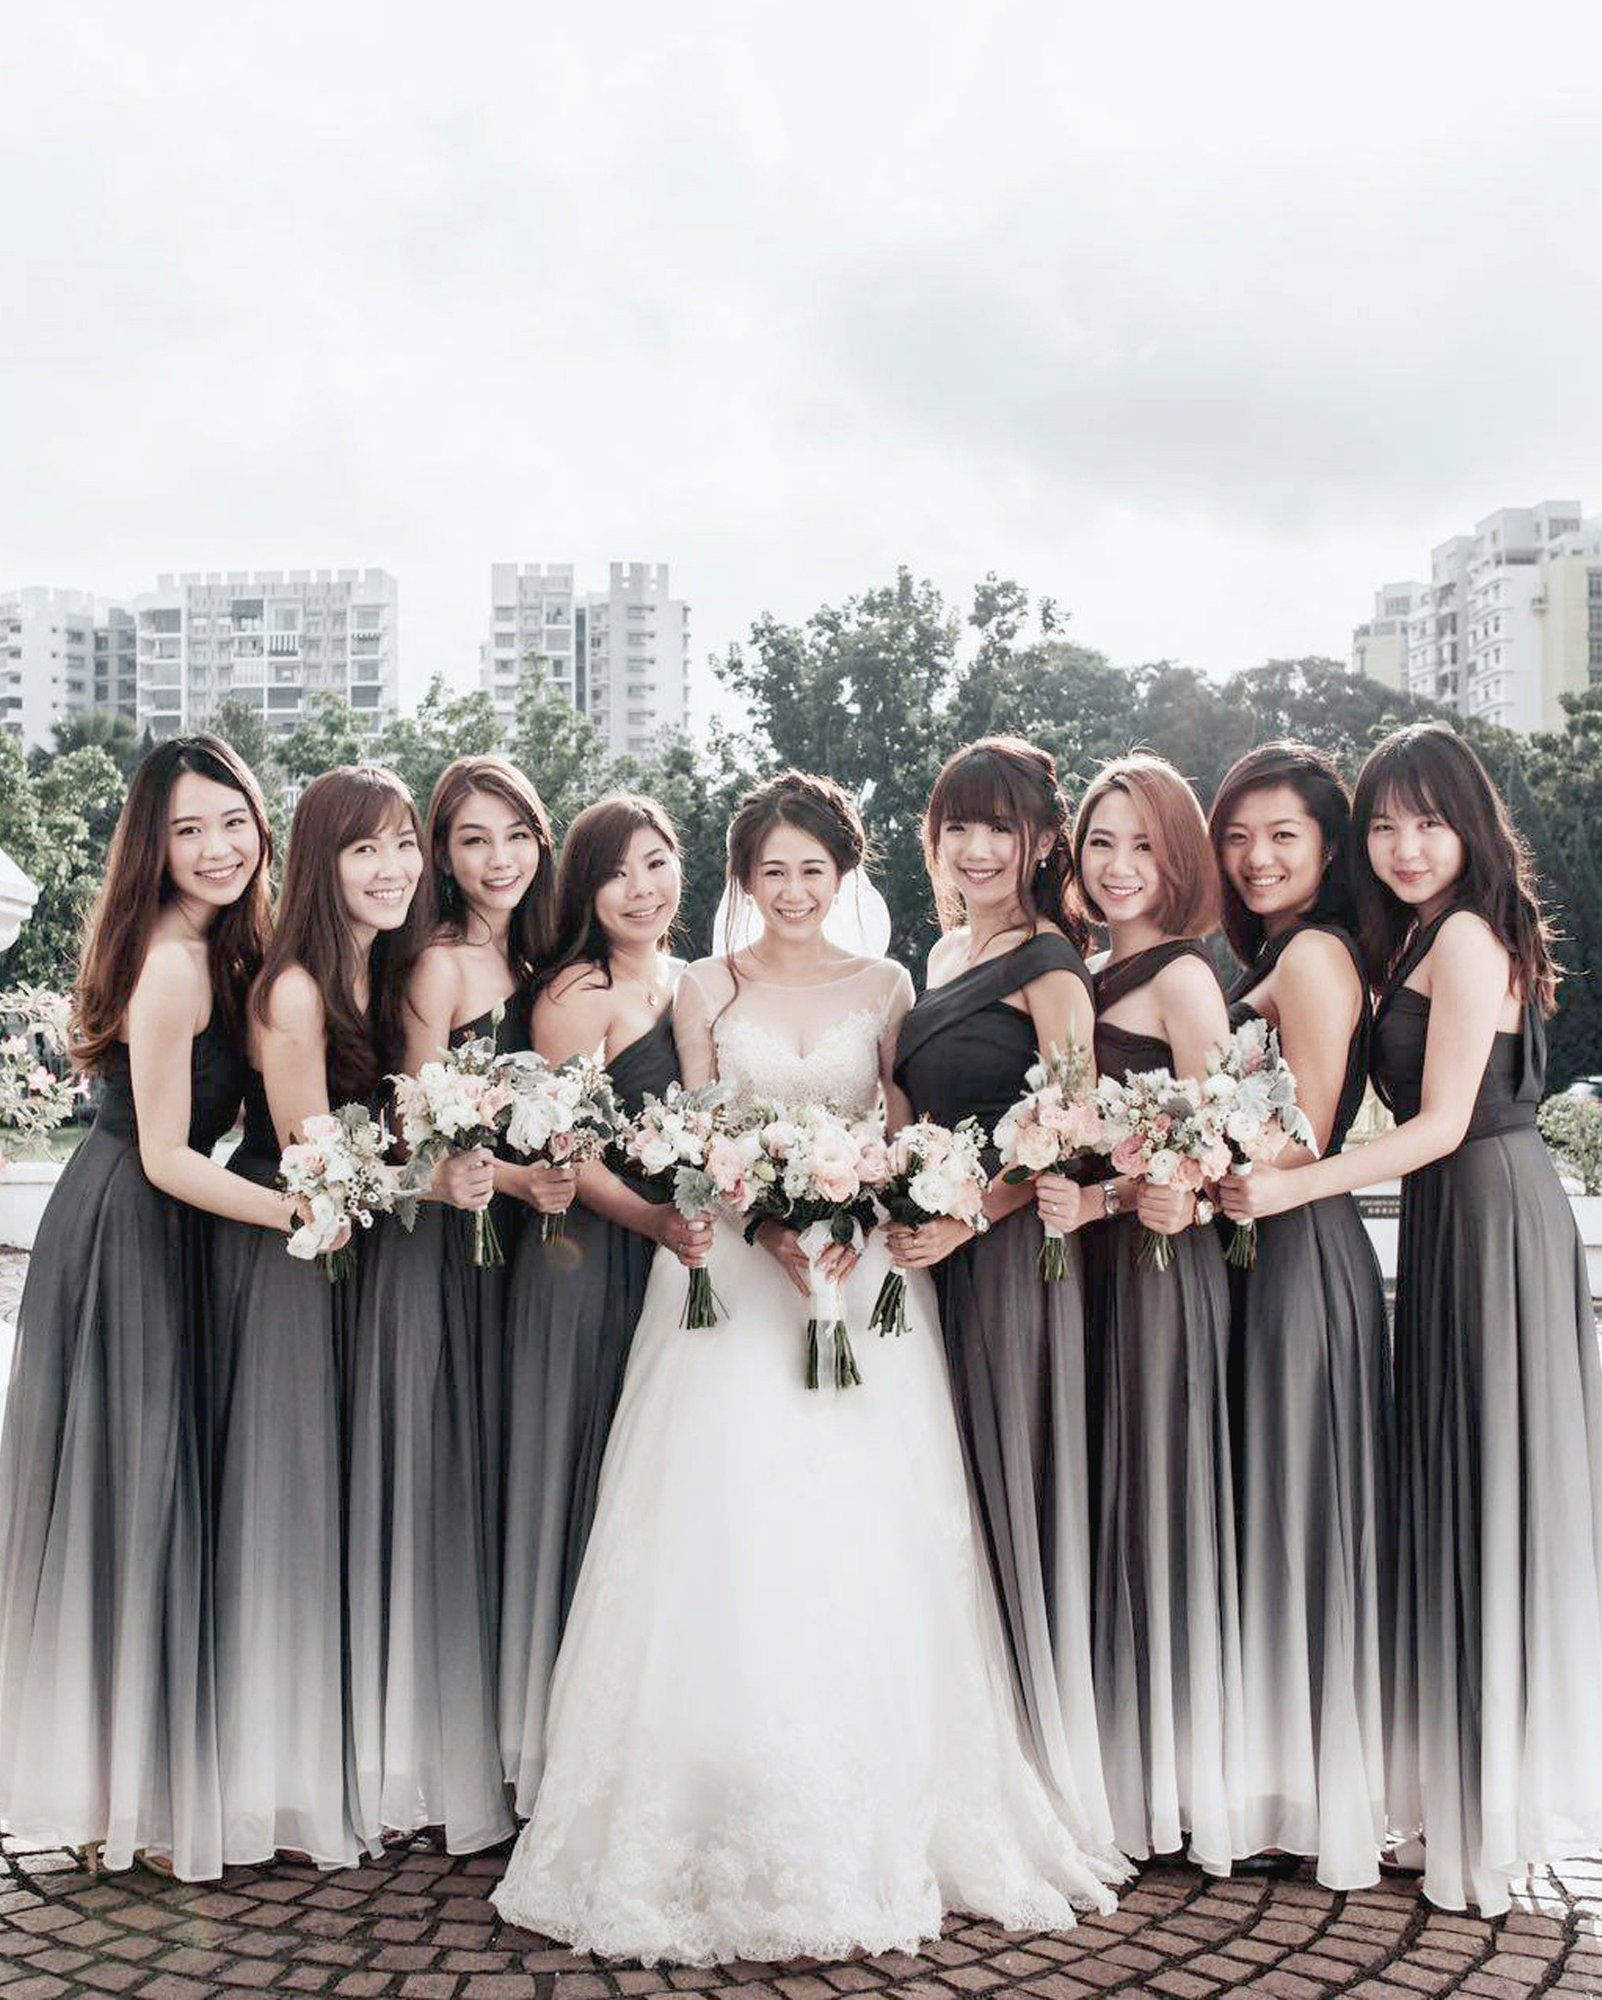 Backorder X Bernad Ombre Dark Ash Toga Theory Of Seven Ombre Wedding Dress Black And White Wedding Theme White Bridesmaid Dresses [ 2000 x 1602 Pixel ]